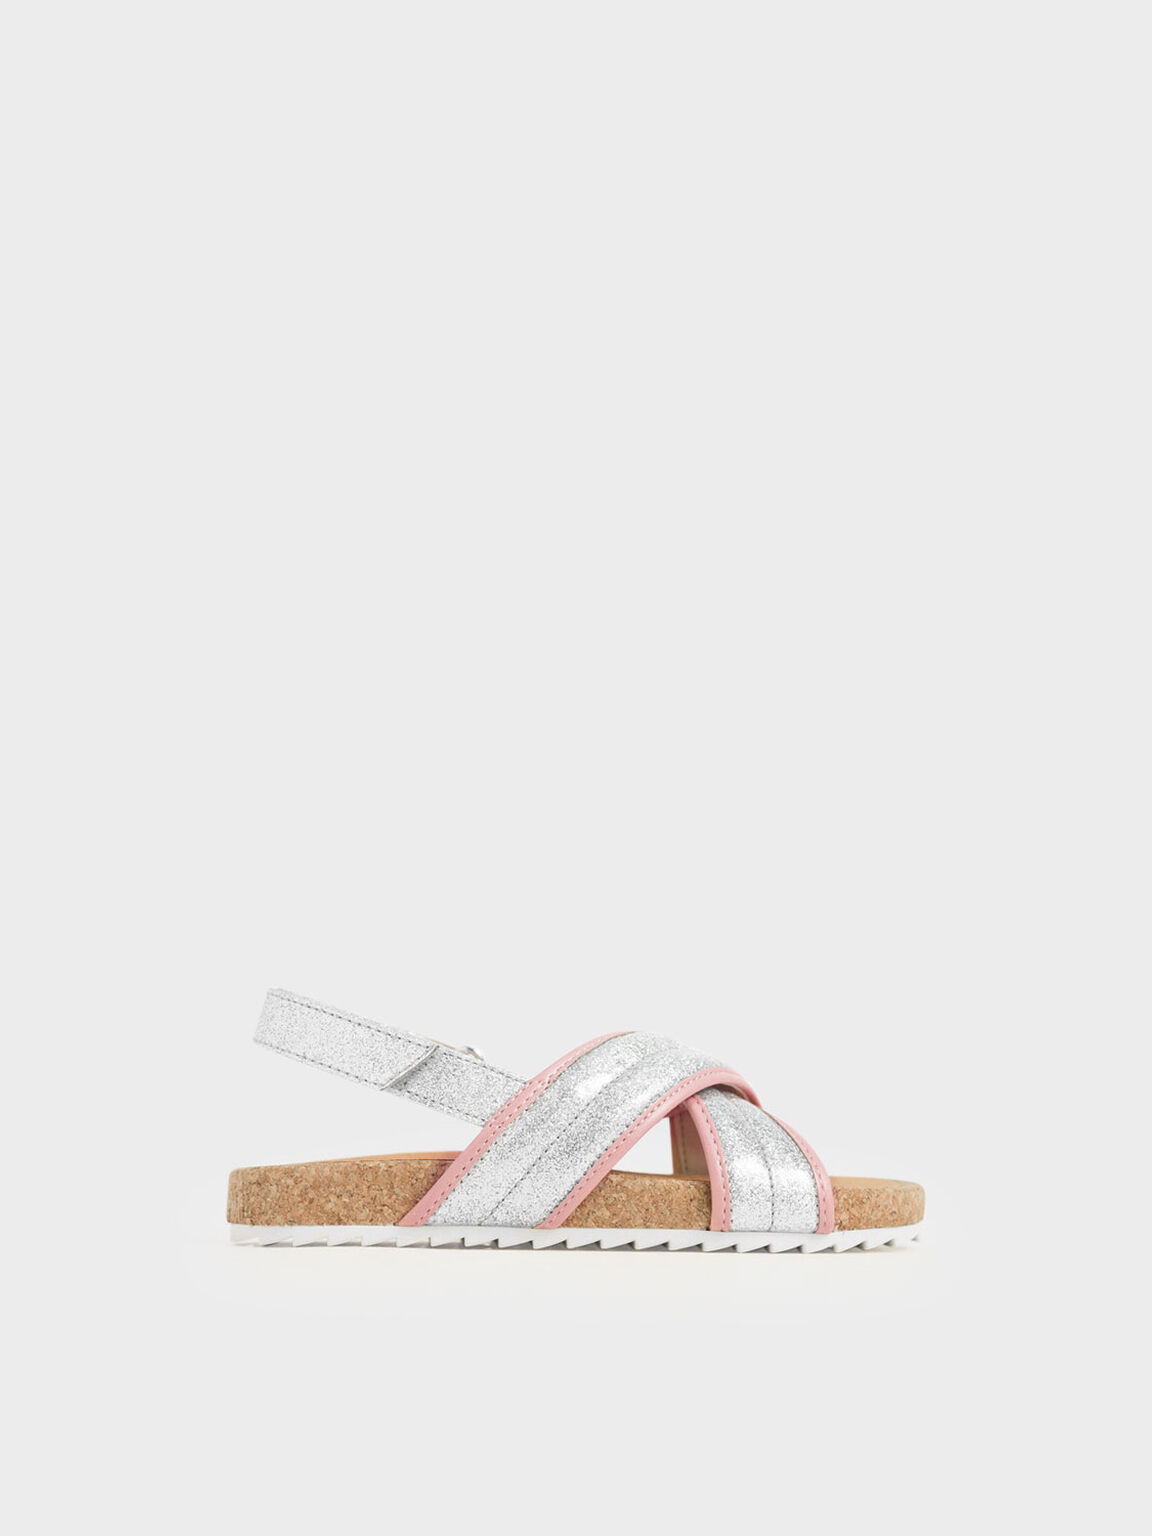 Girls' Glitter Criss Cross Sandals, Silver, hi-res